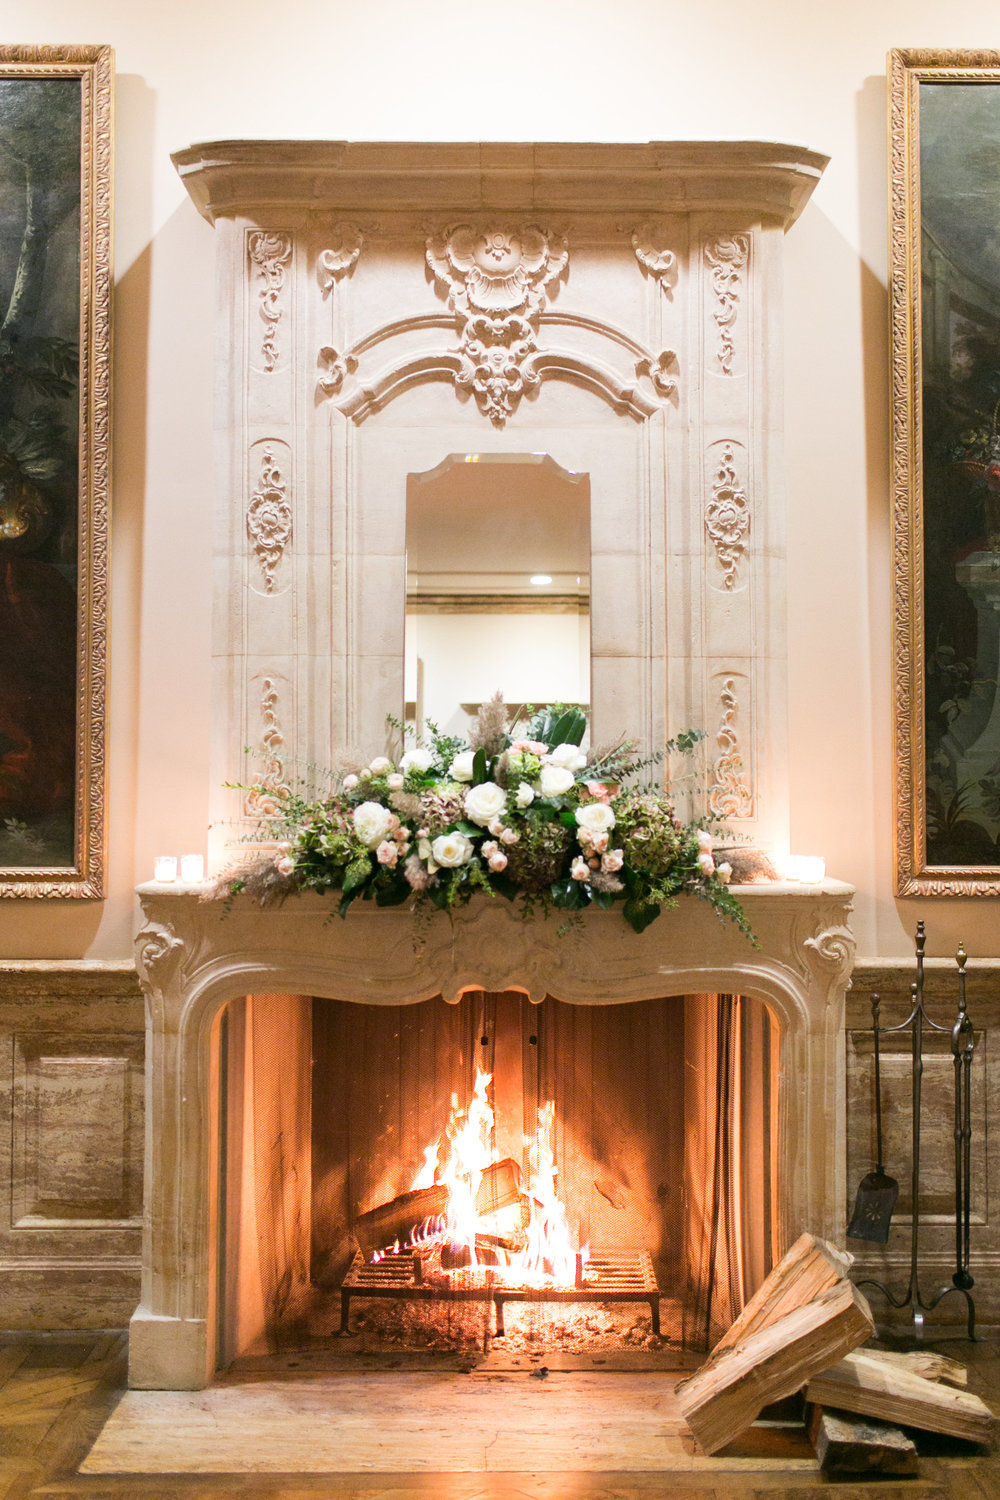 How gorgeous is this fireplace?  We had to create a design that matched the ornate beauty of the mantle.  A huge floral arrangement of roses, hydrangea,